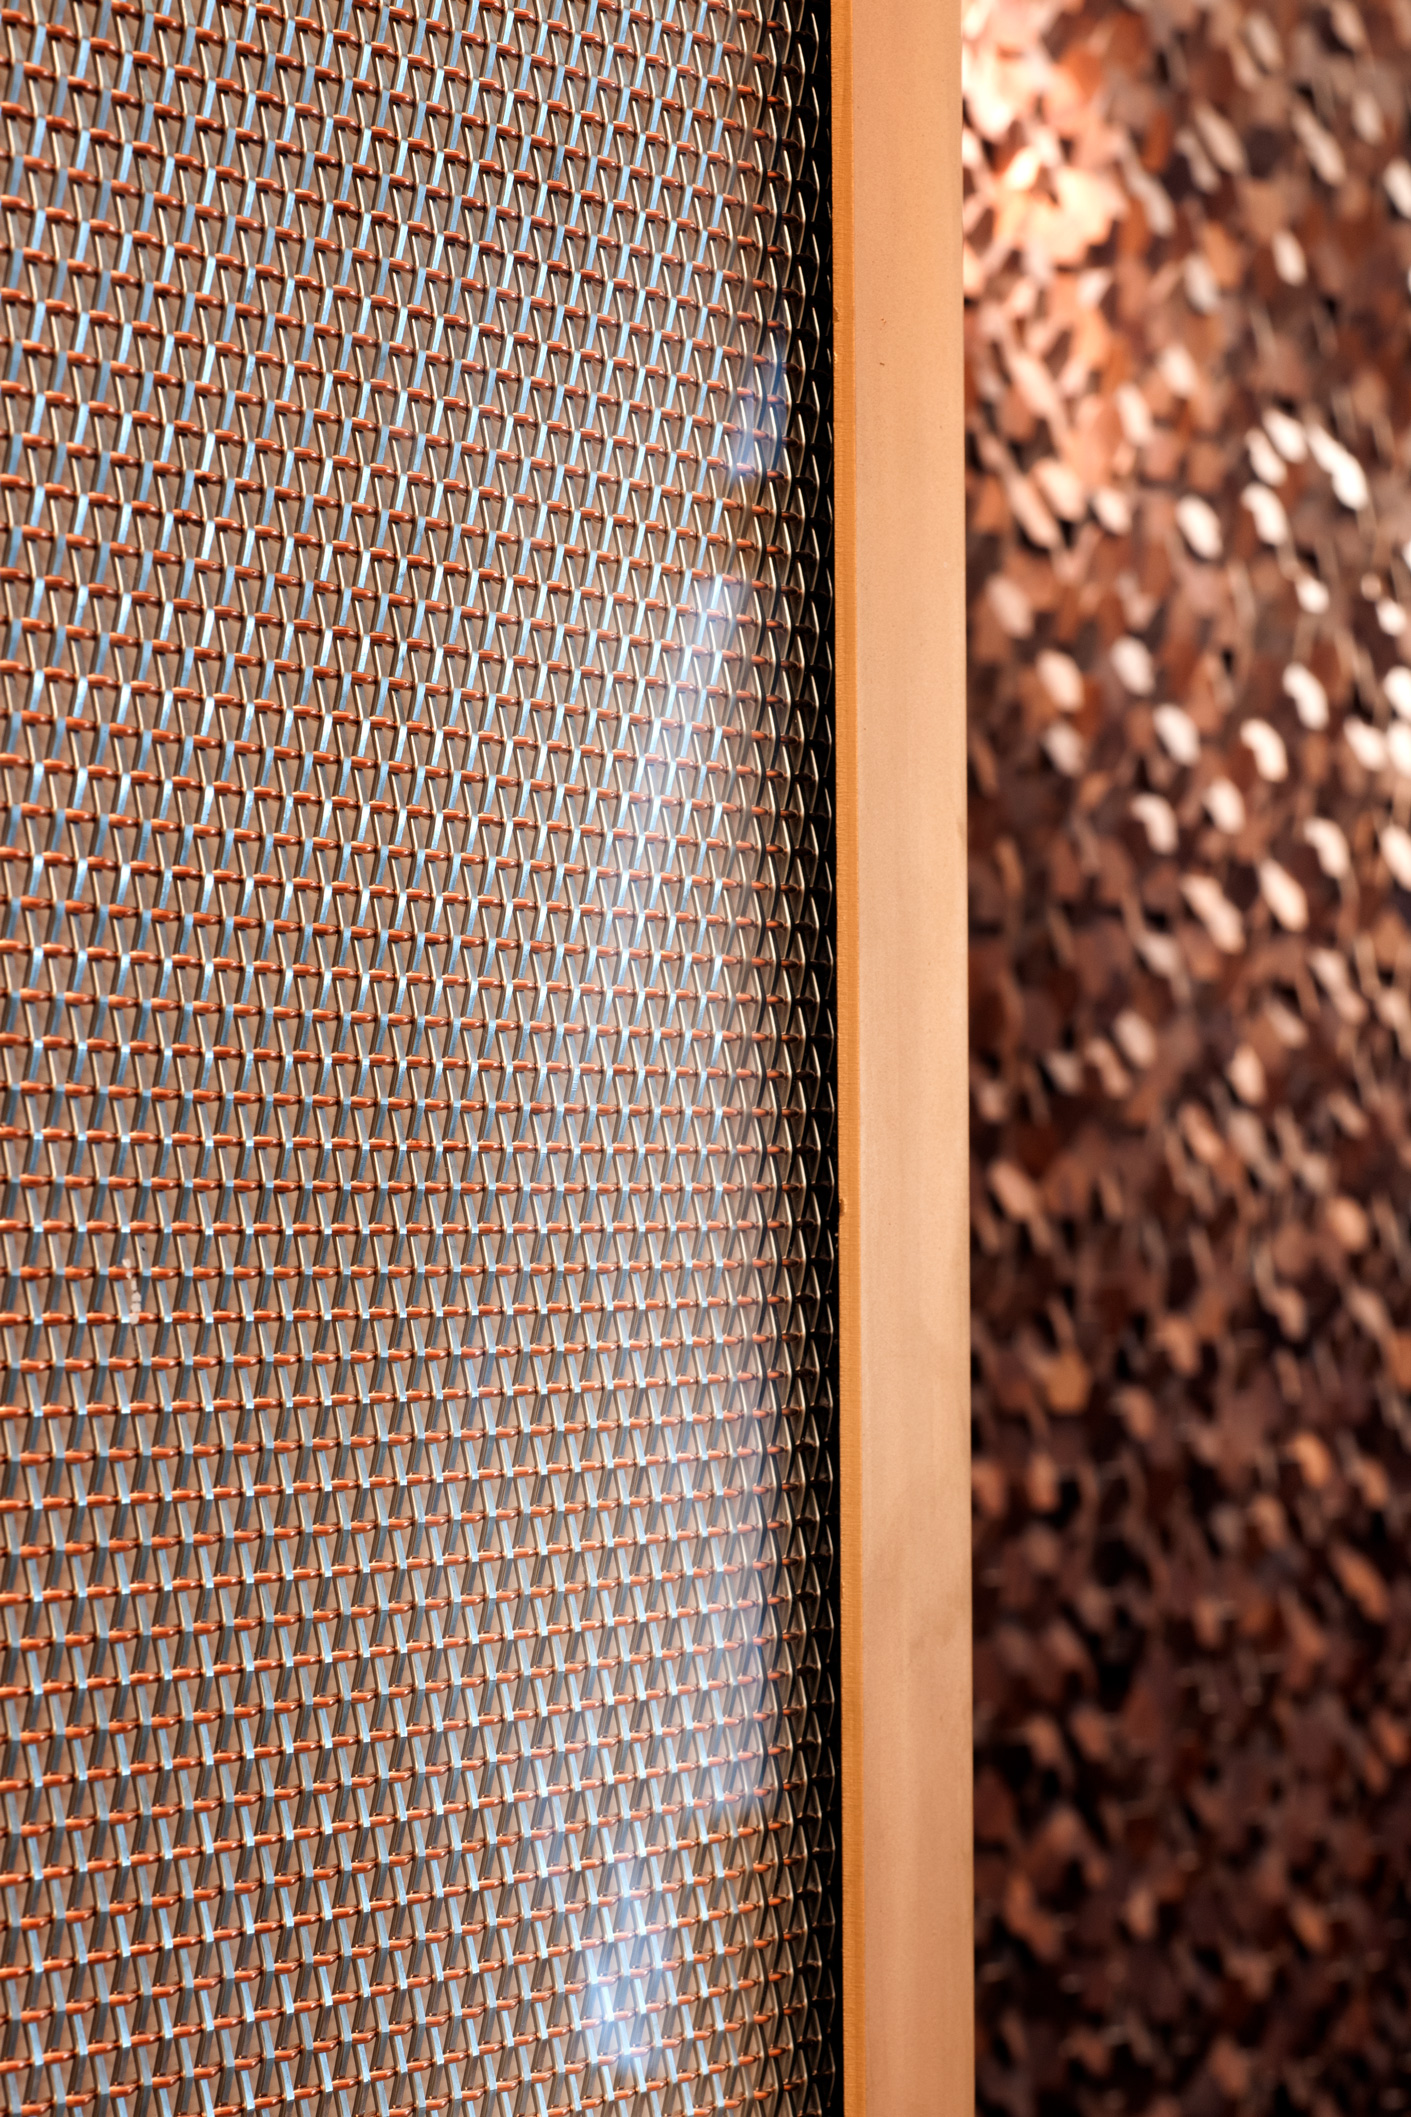 The SZ-4 wire mesh pattern in copper and stainless steel perfectly complements the warmth of the renovated entrance.